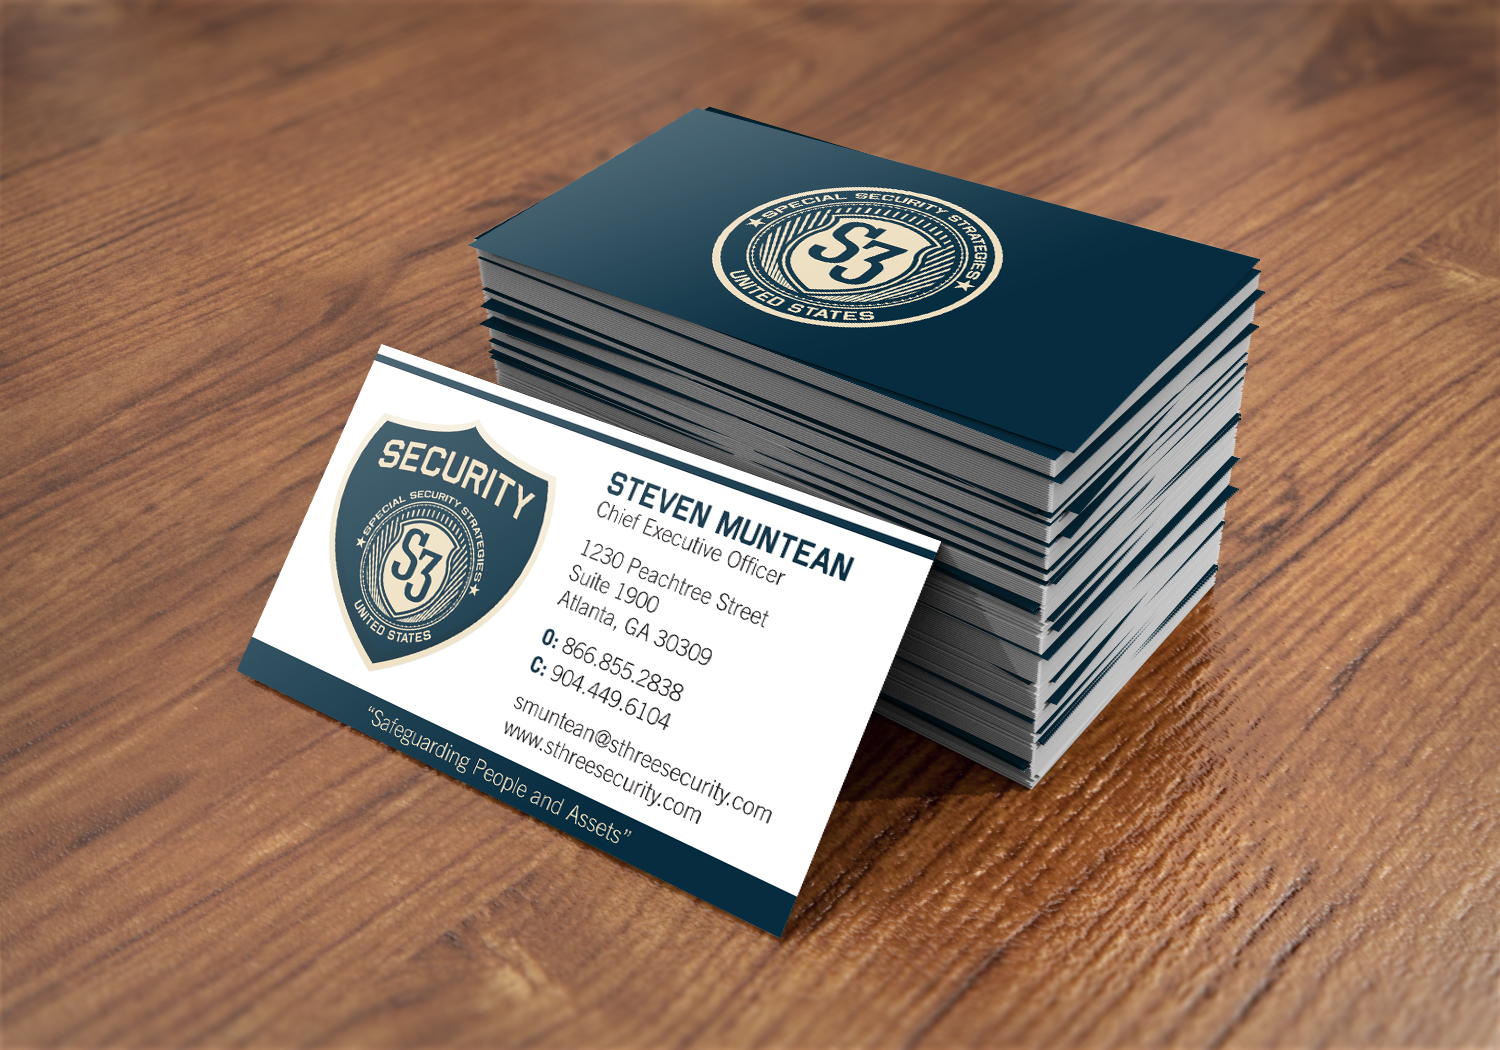 Security Companys Security Company Business Cards